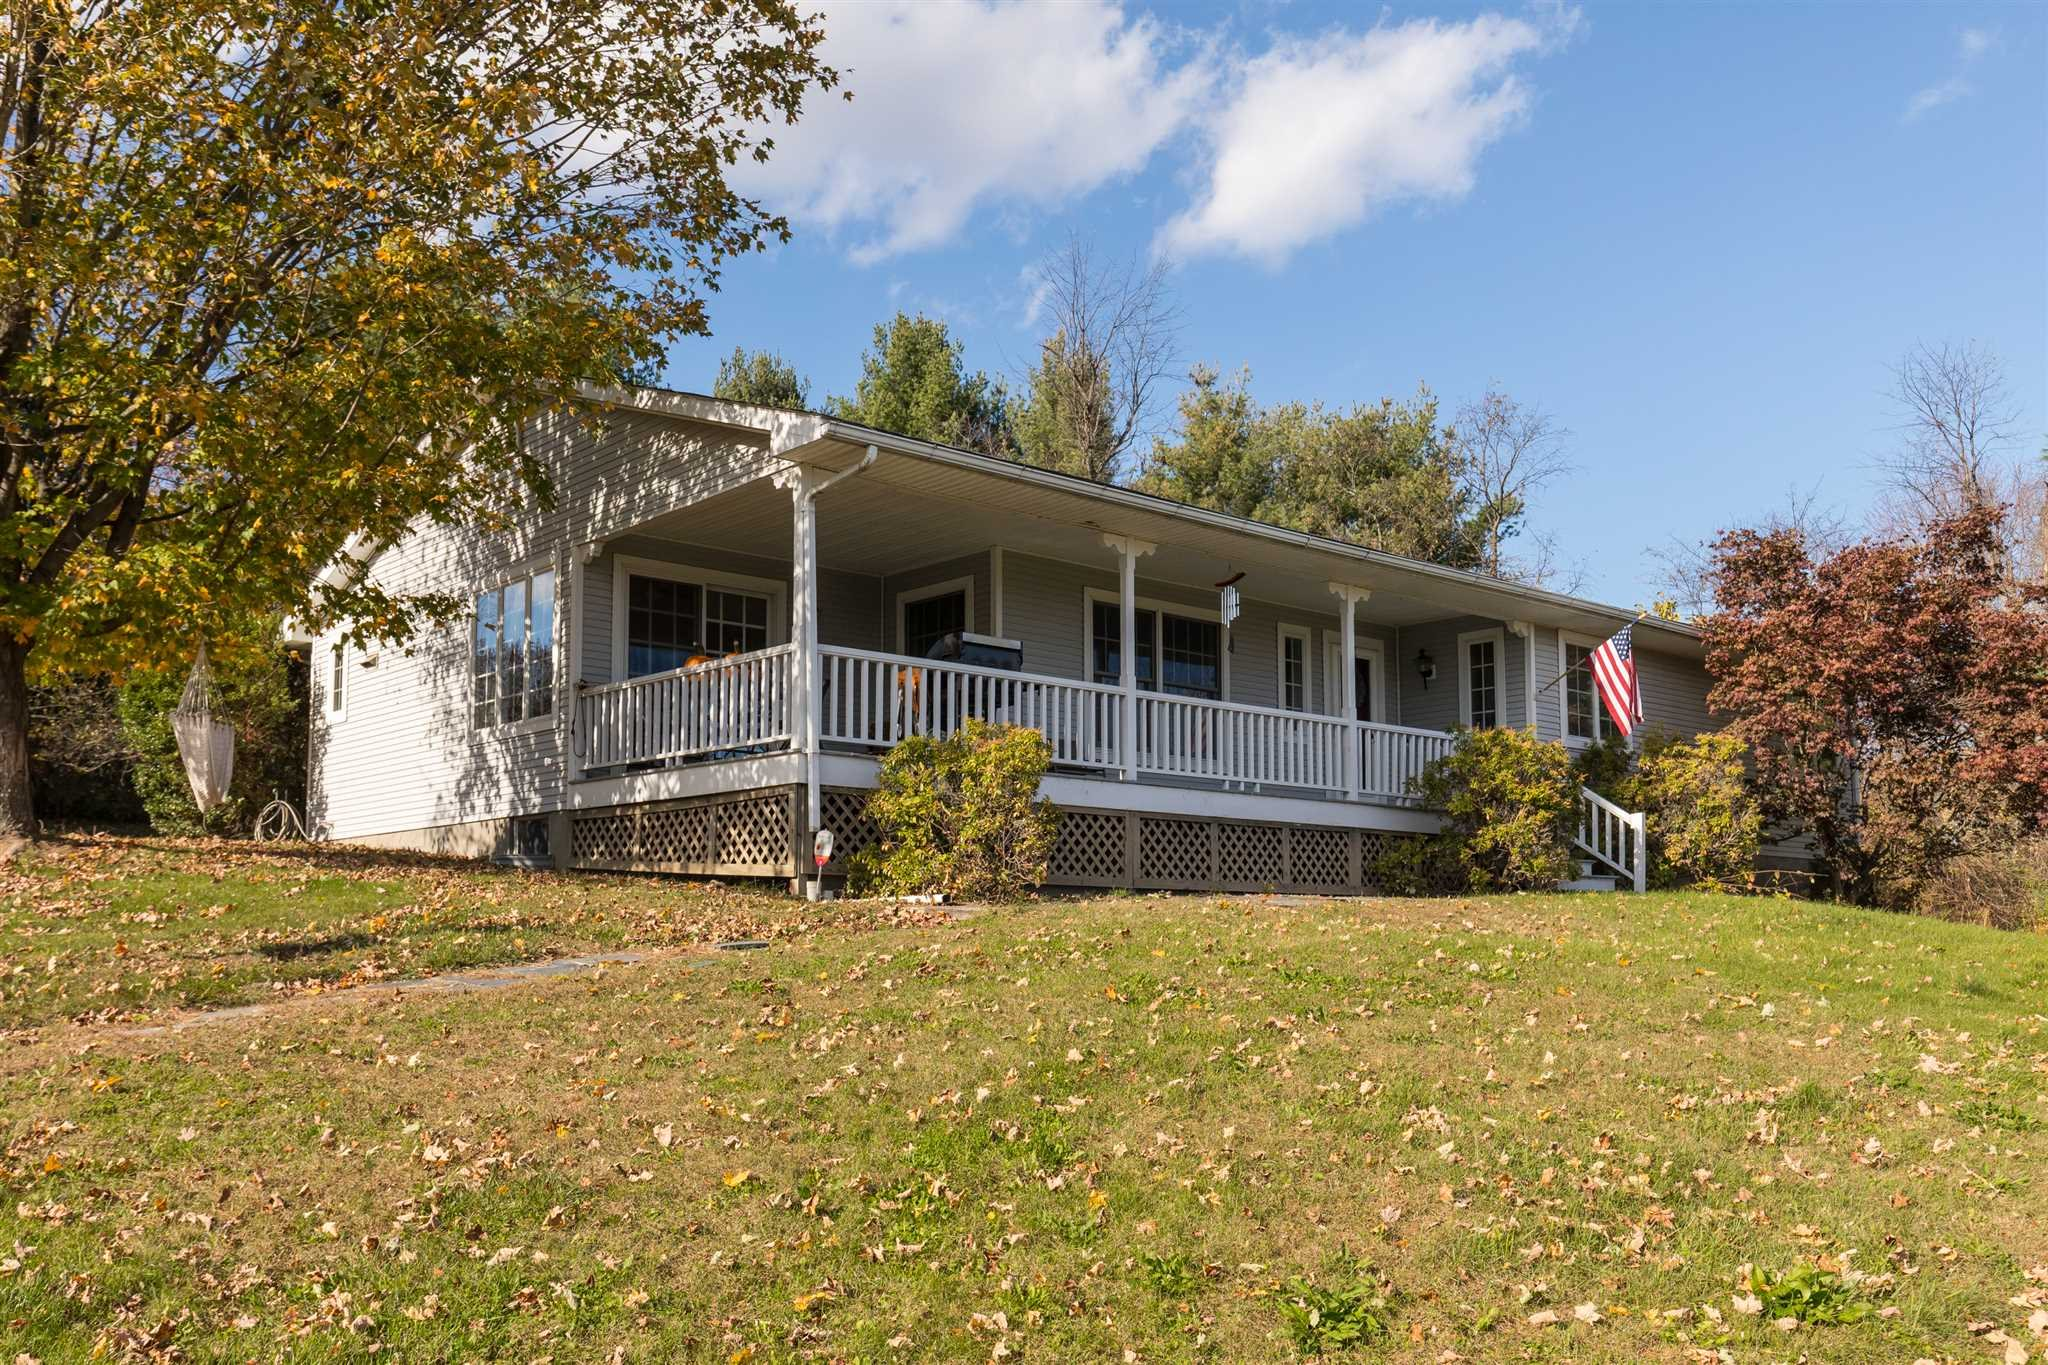 Single Family Home for Sale at 4 CLOVER WAY 4 CLOVER WAY Pleasant Valley, New York 12569 United States